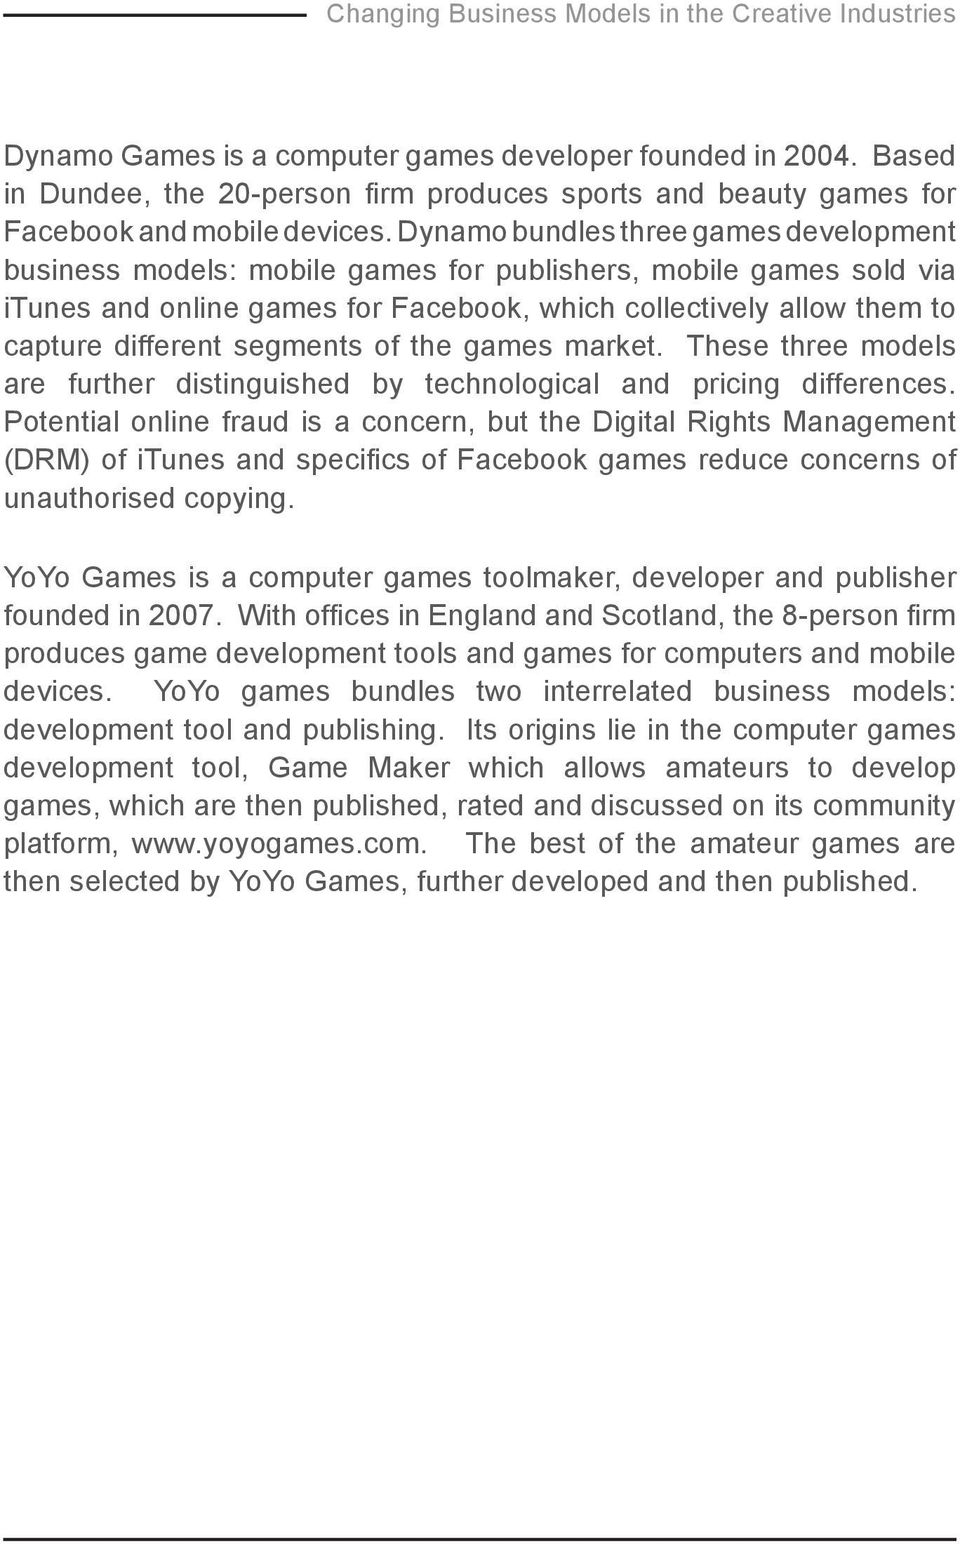 segments of the games market. These three models are further distinguished by technological and pricing differences.